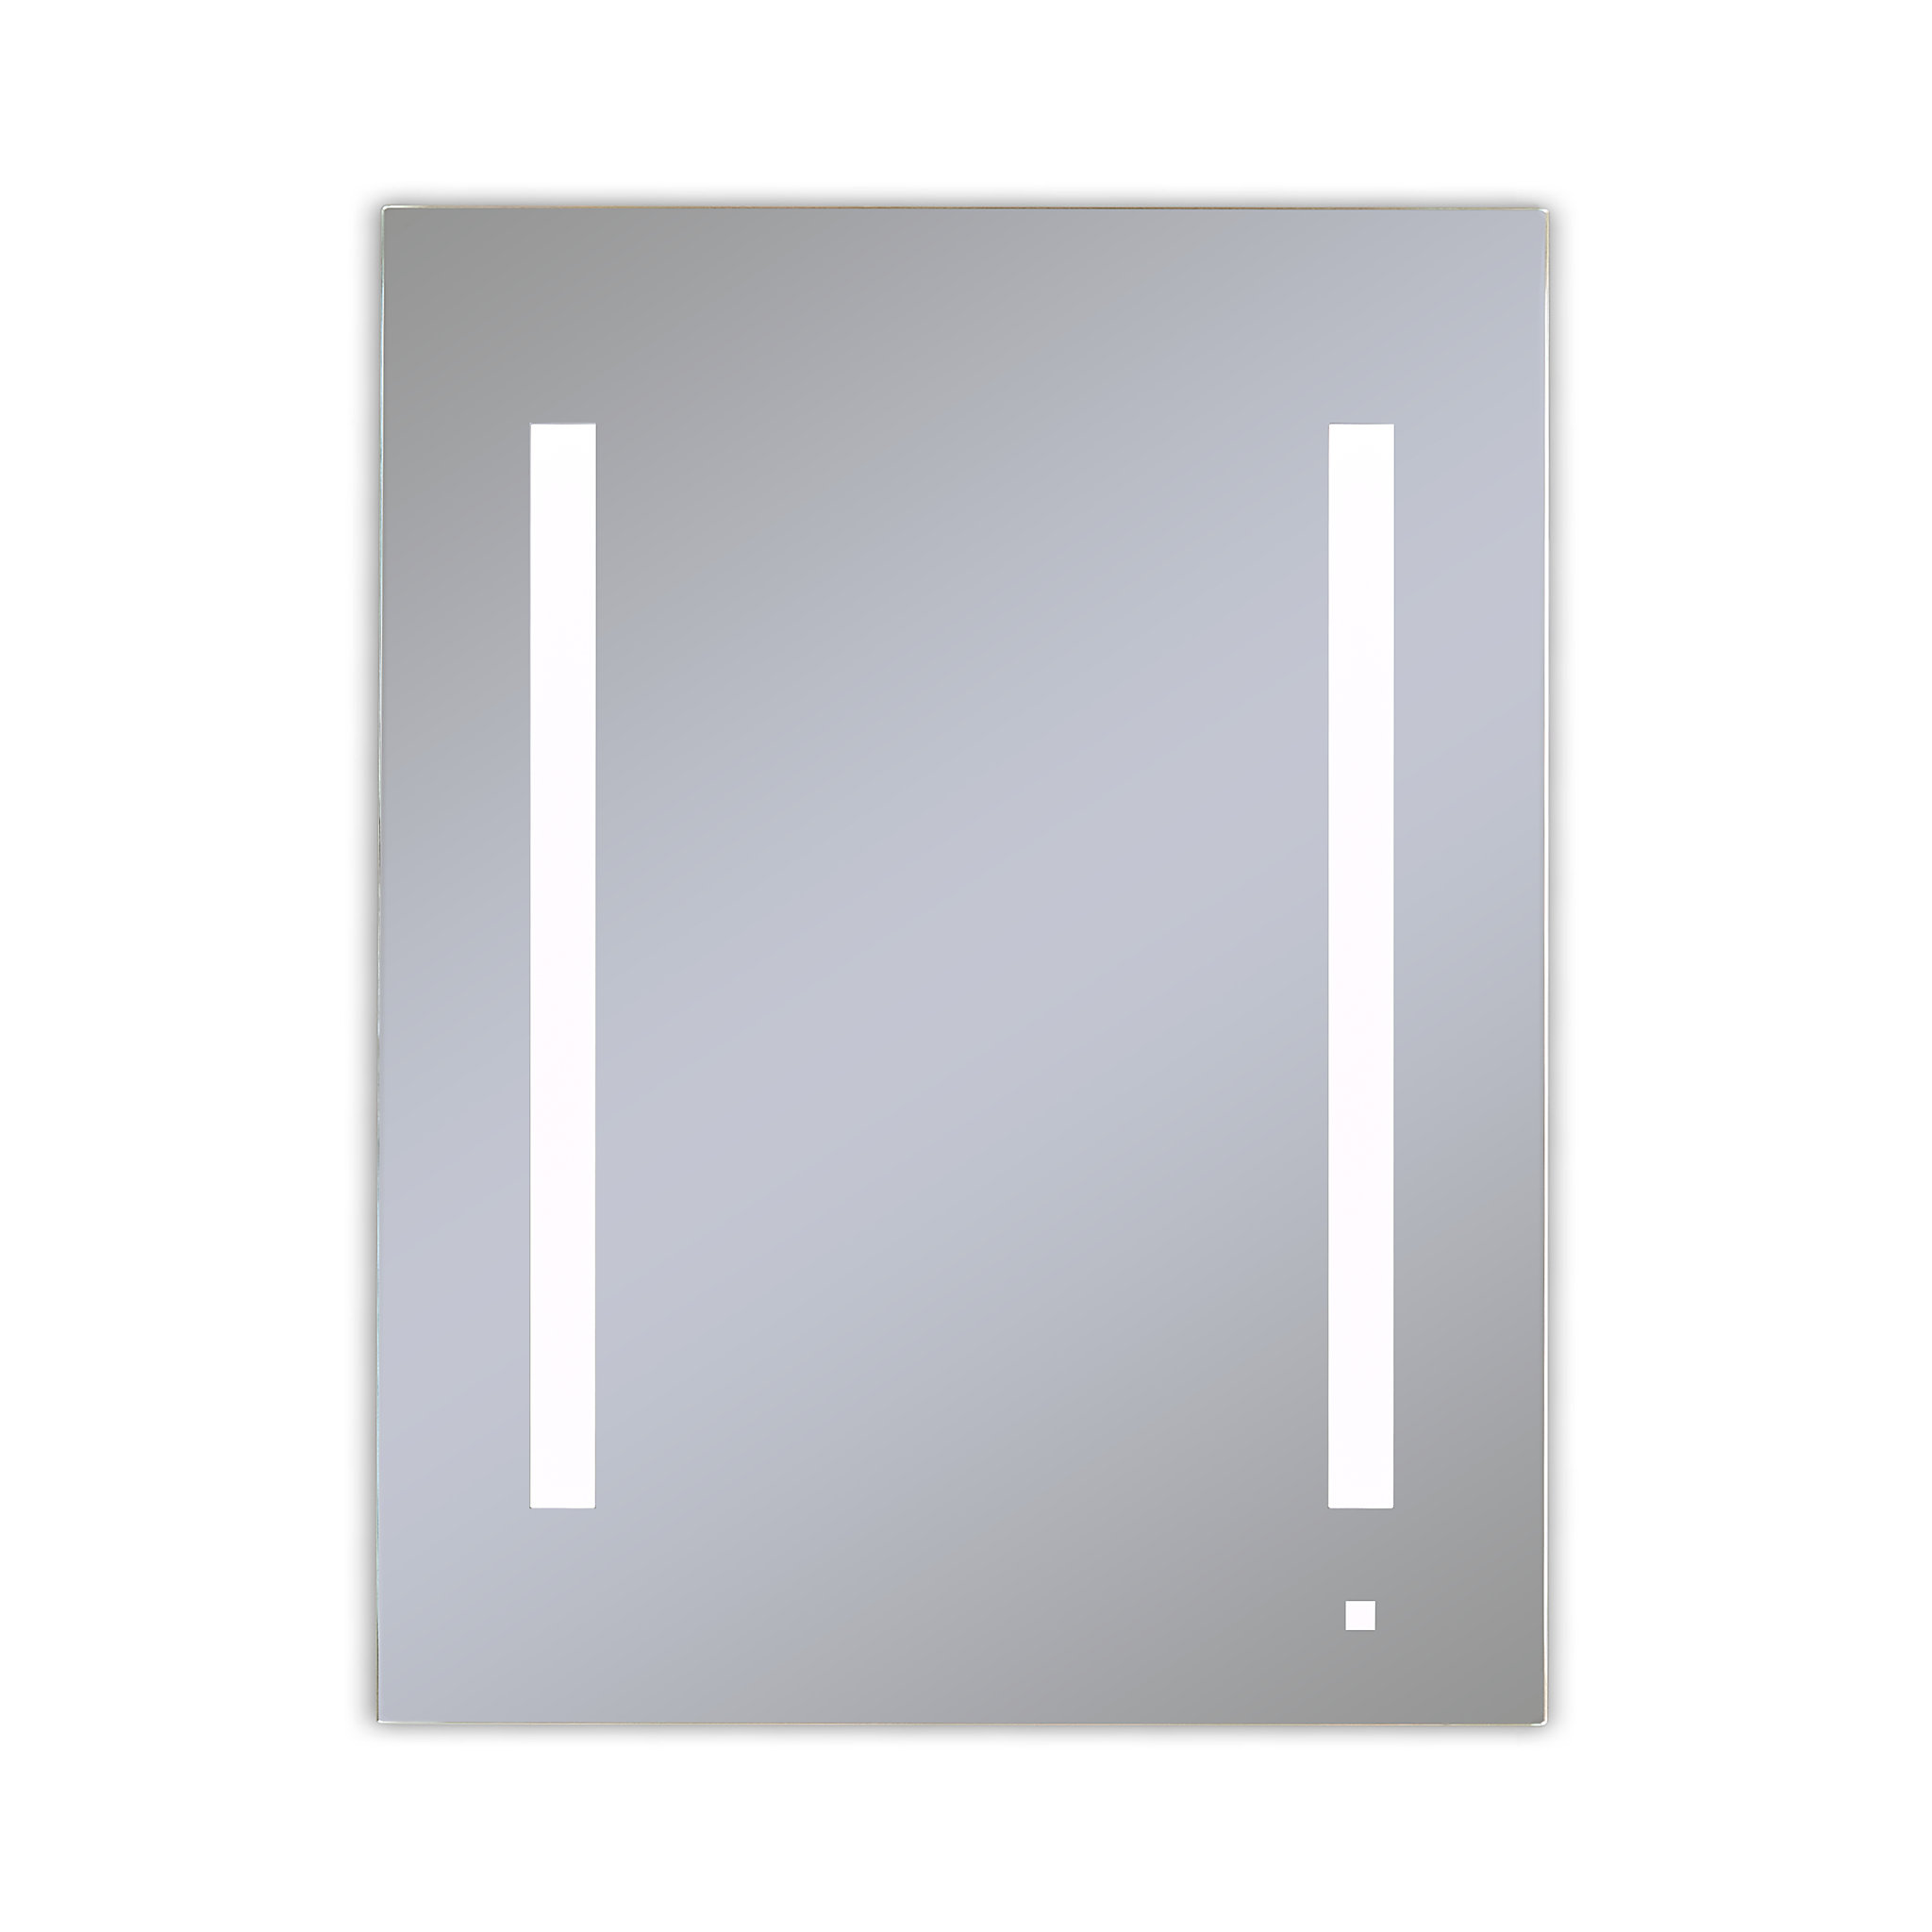 "Robern AC2430D4P1LA AiO Lighted Cabinet, 24"" x 30"" x 4"", LUM Lighting, 4000K Temperature (Cool Light), Dimmable, OM Audio, Elect"